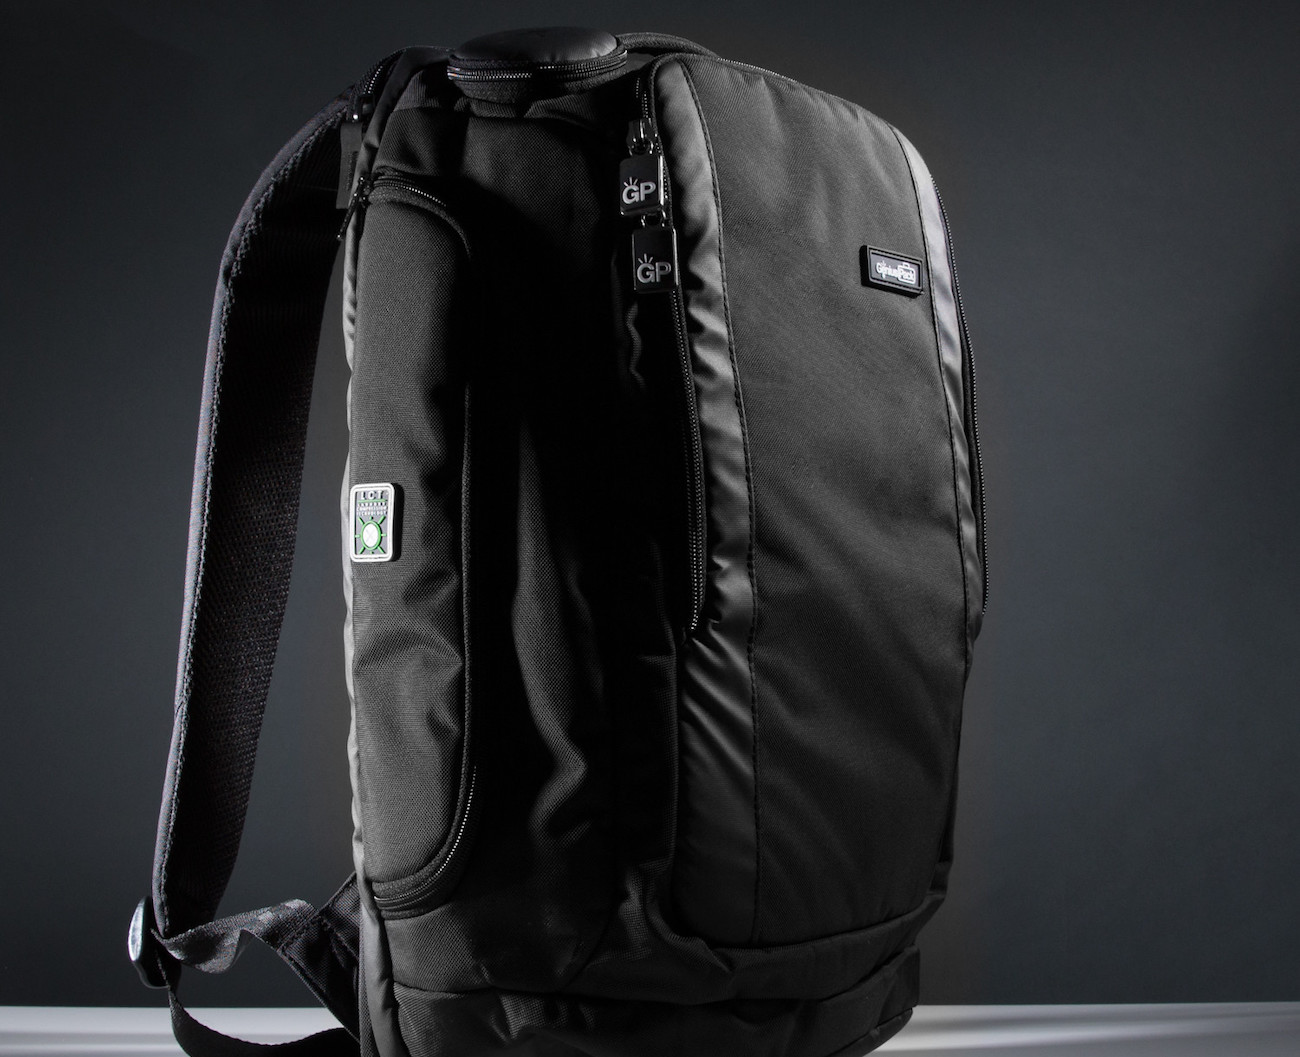 Genius+Pack+Travel+Backpack+W%2F+Integrated+Suiter